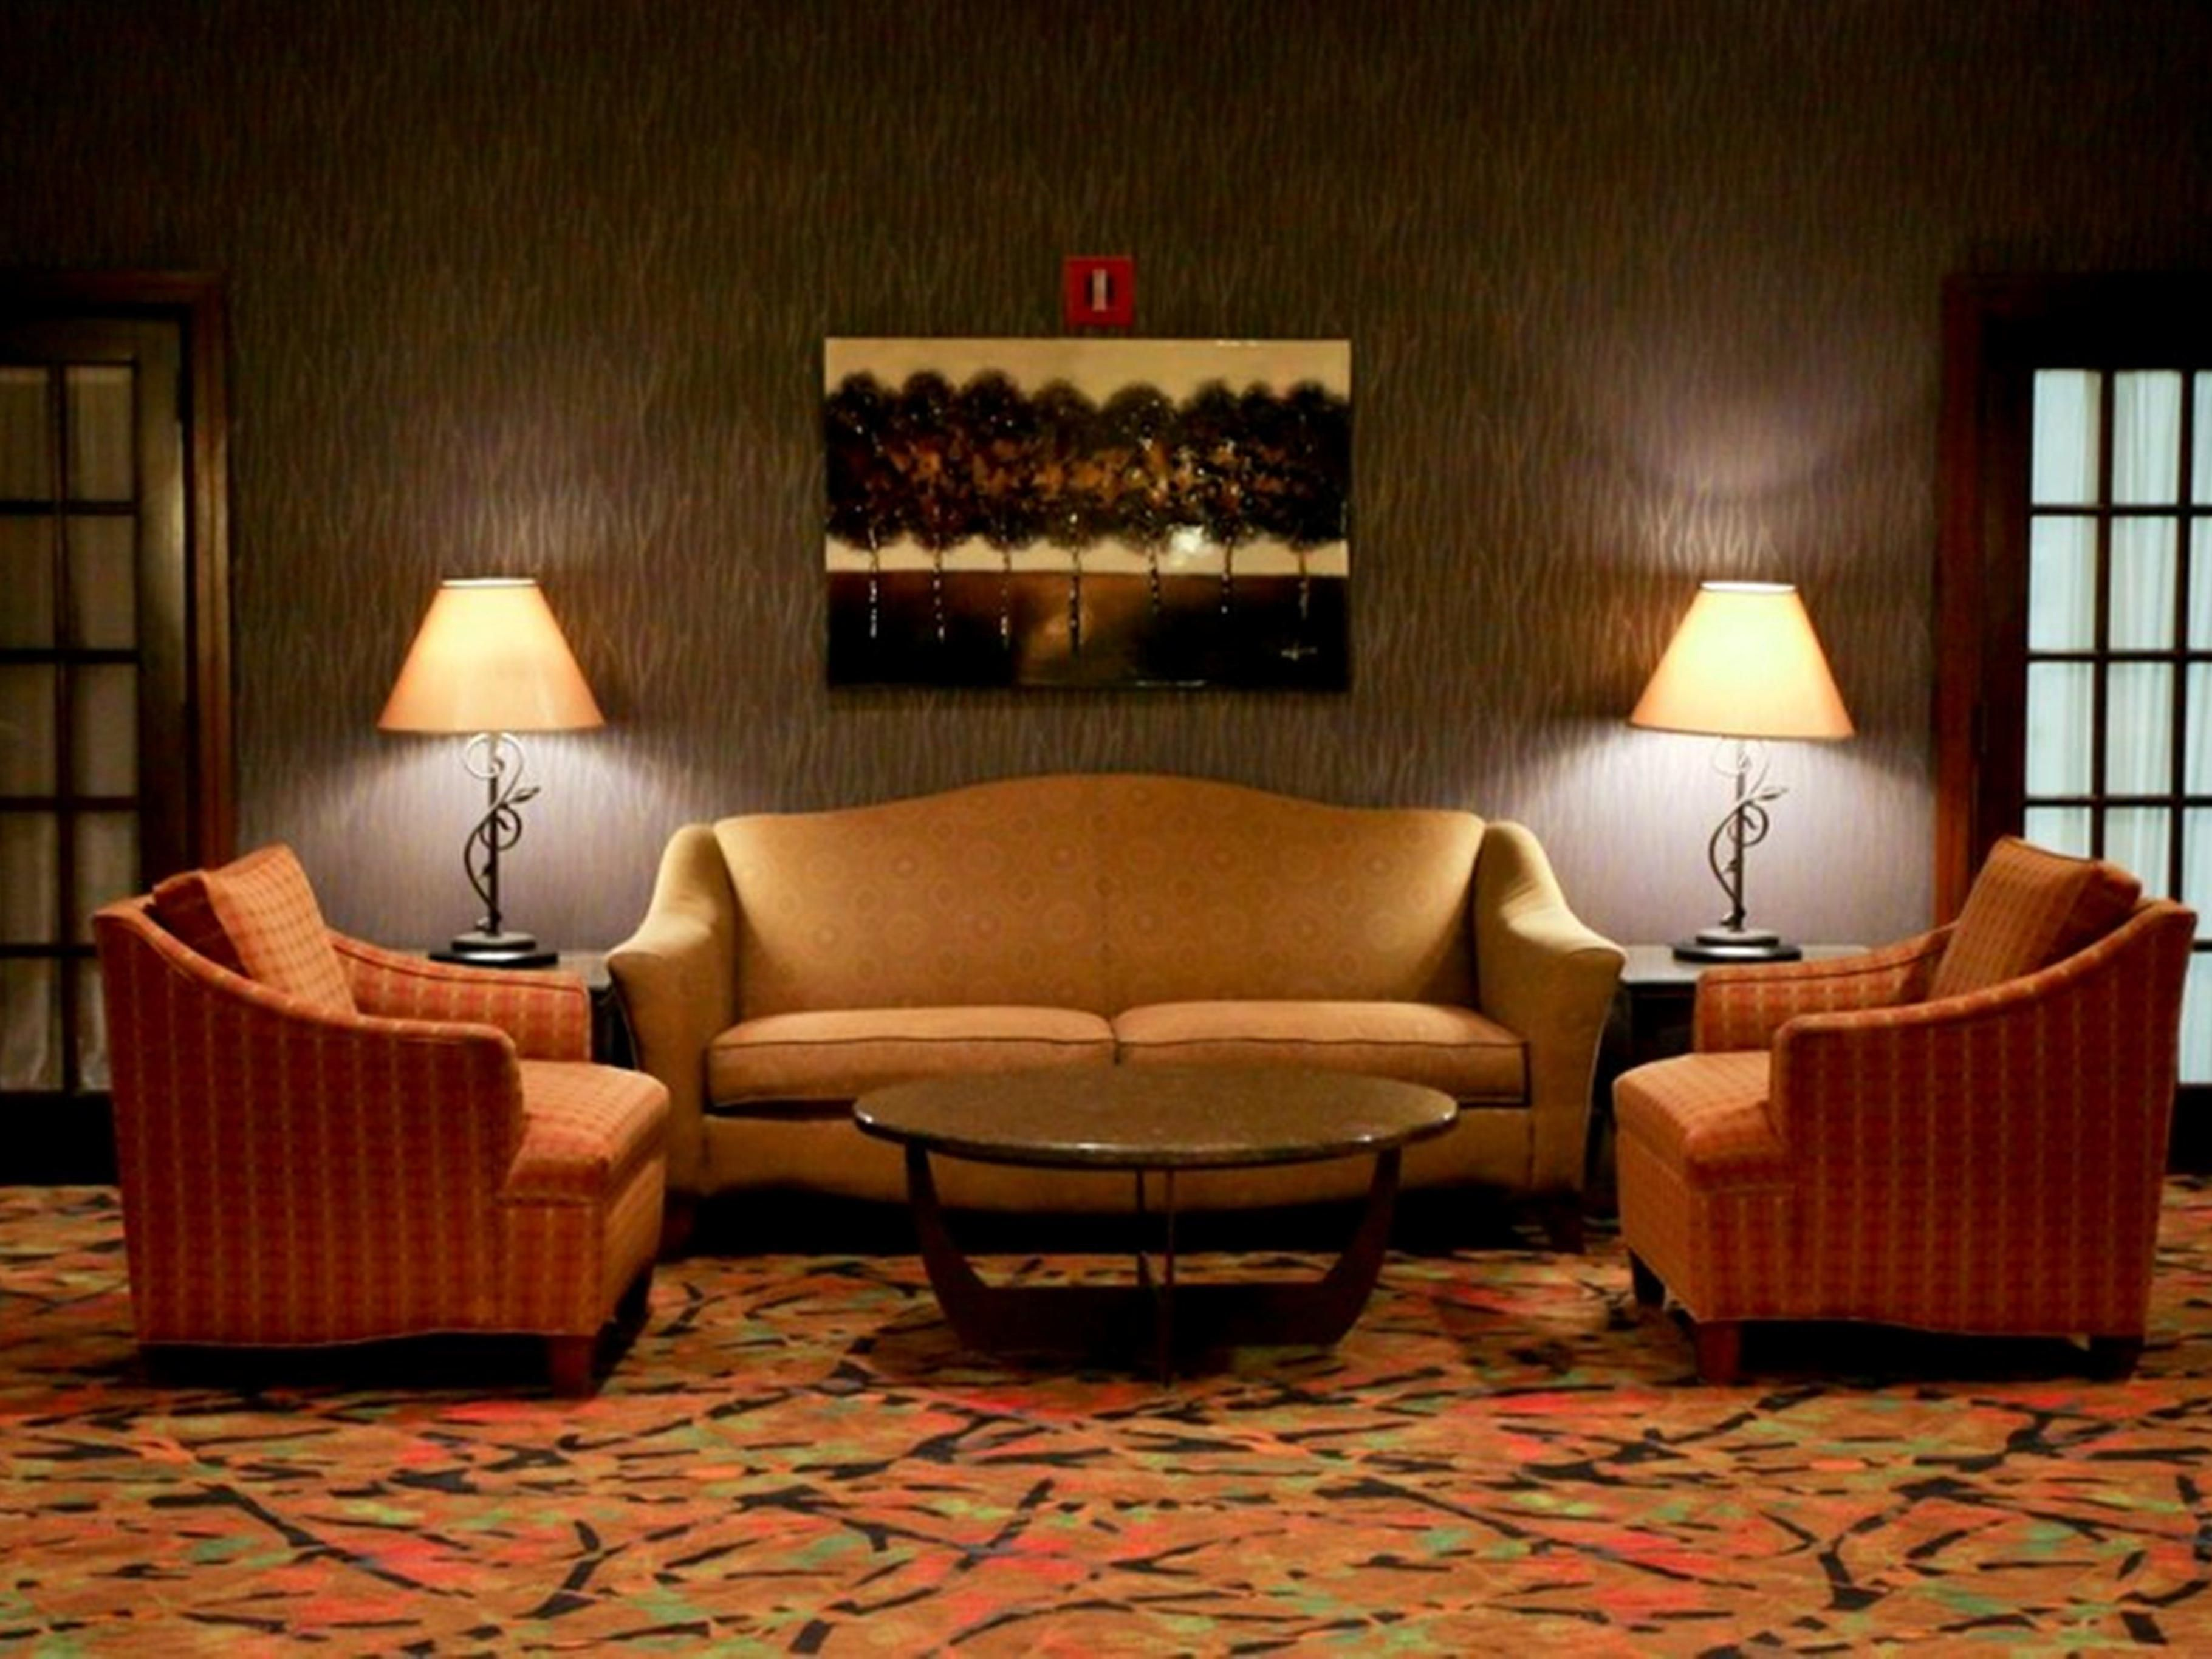 Comfortable seating areas are spread around the entire lobby